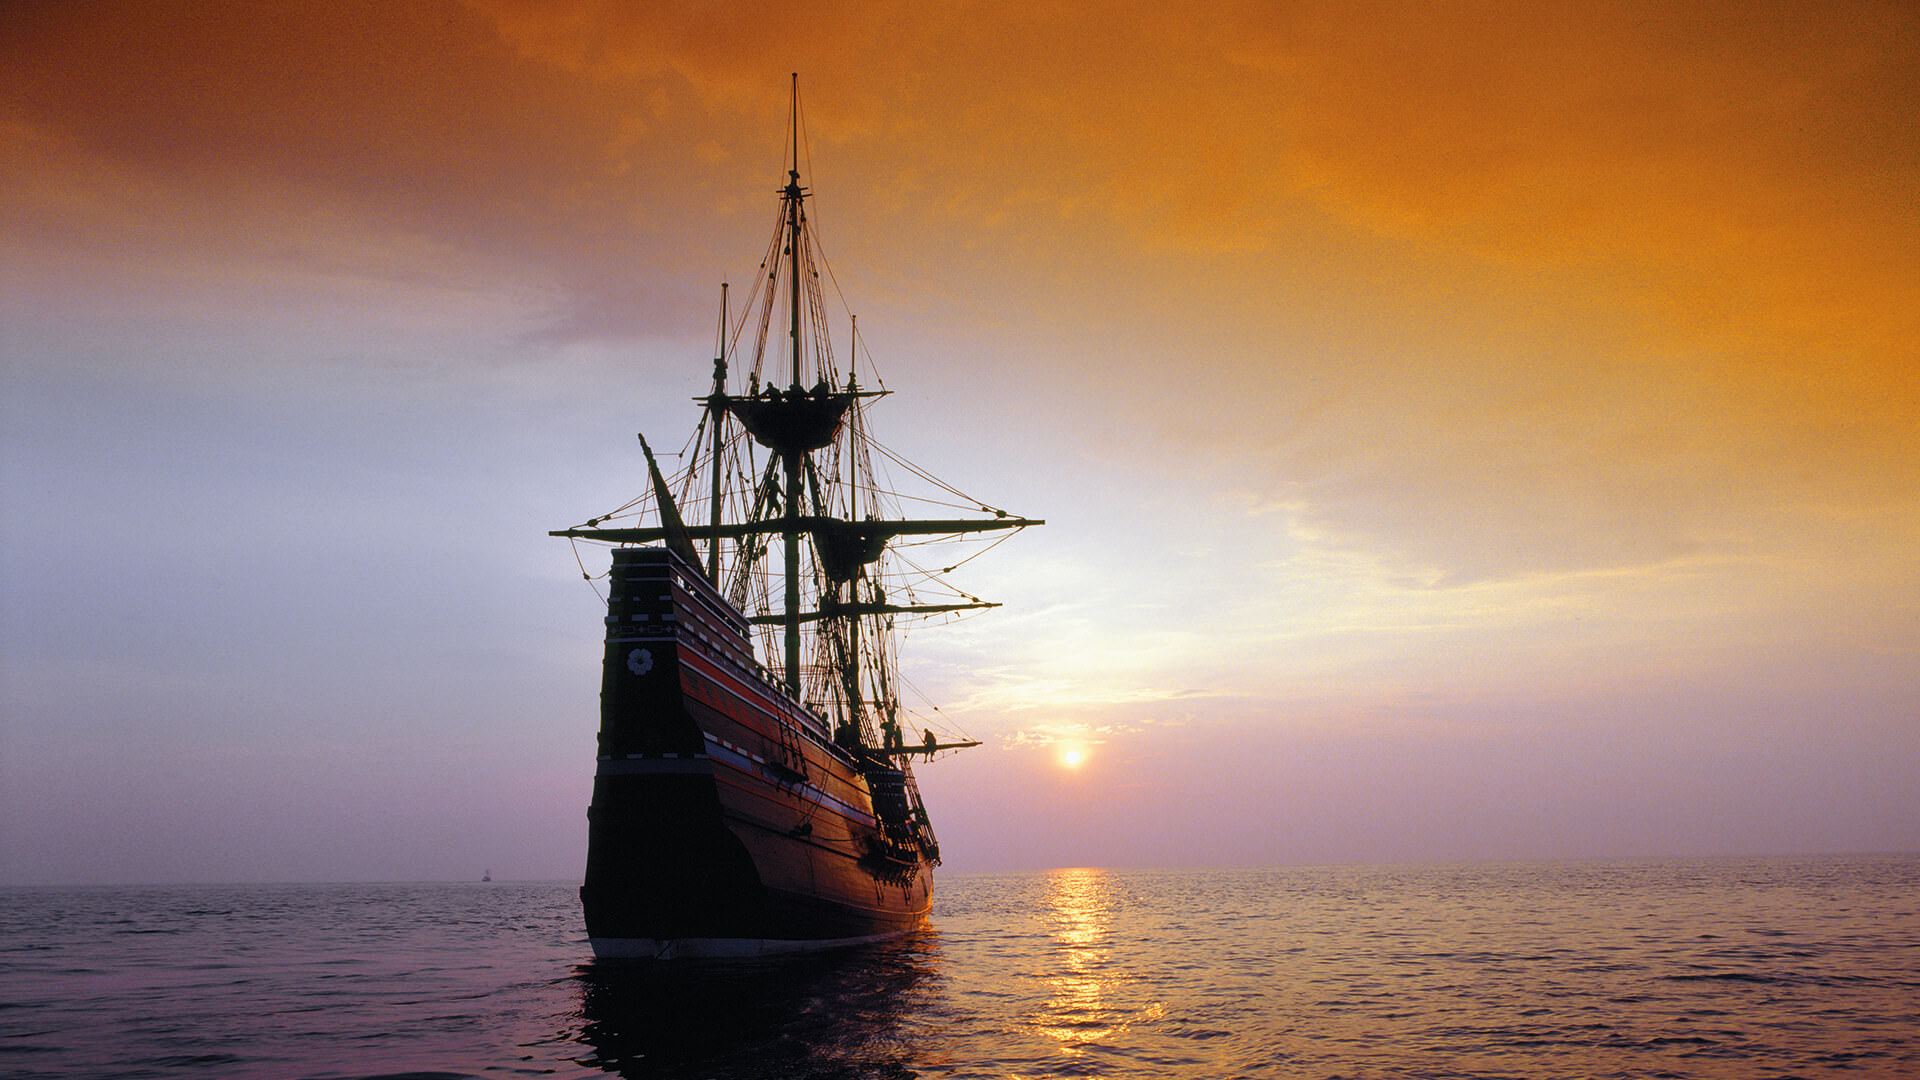 Discover Harwich and the story of the Mayflower